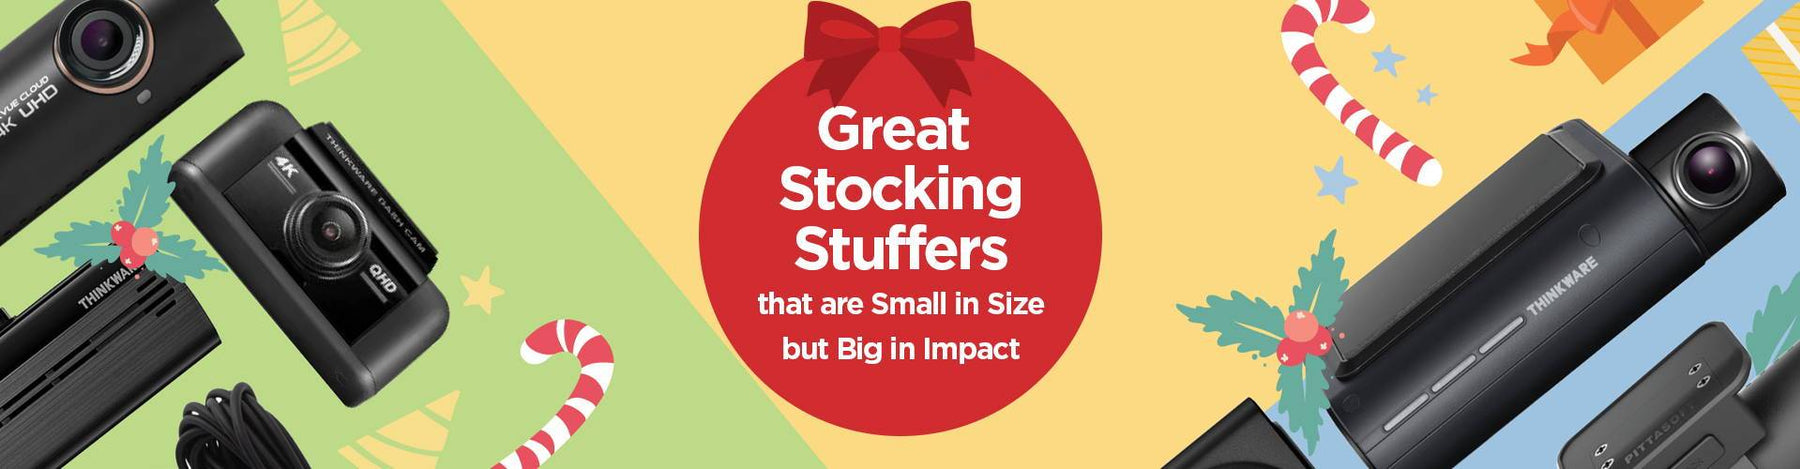 Great Stocking Stuffers that are Small in Size but Big in Impact